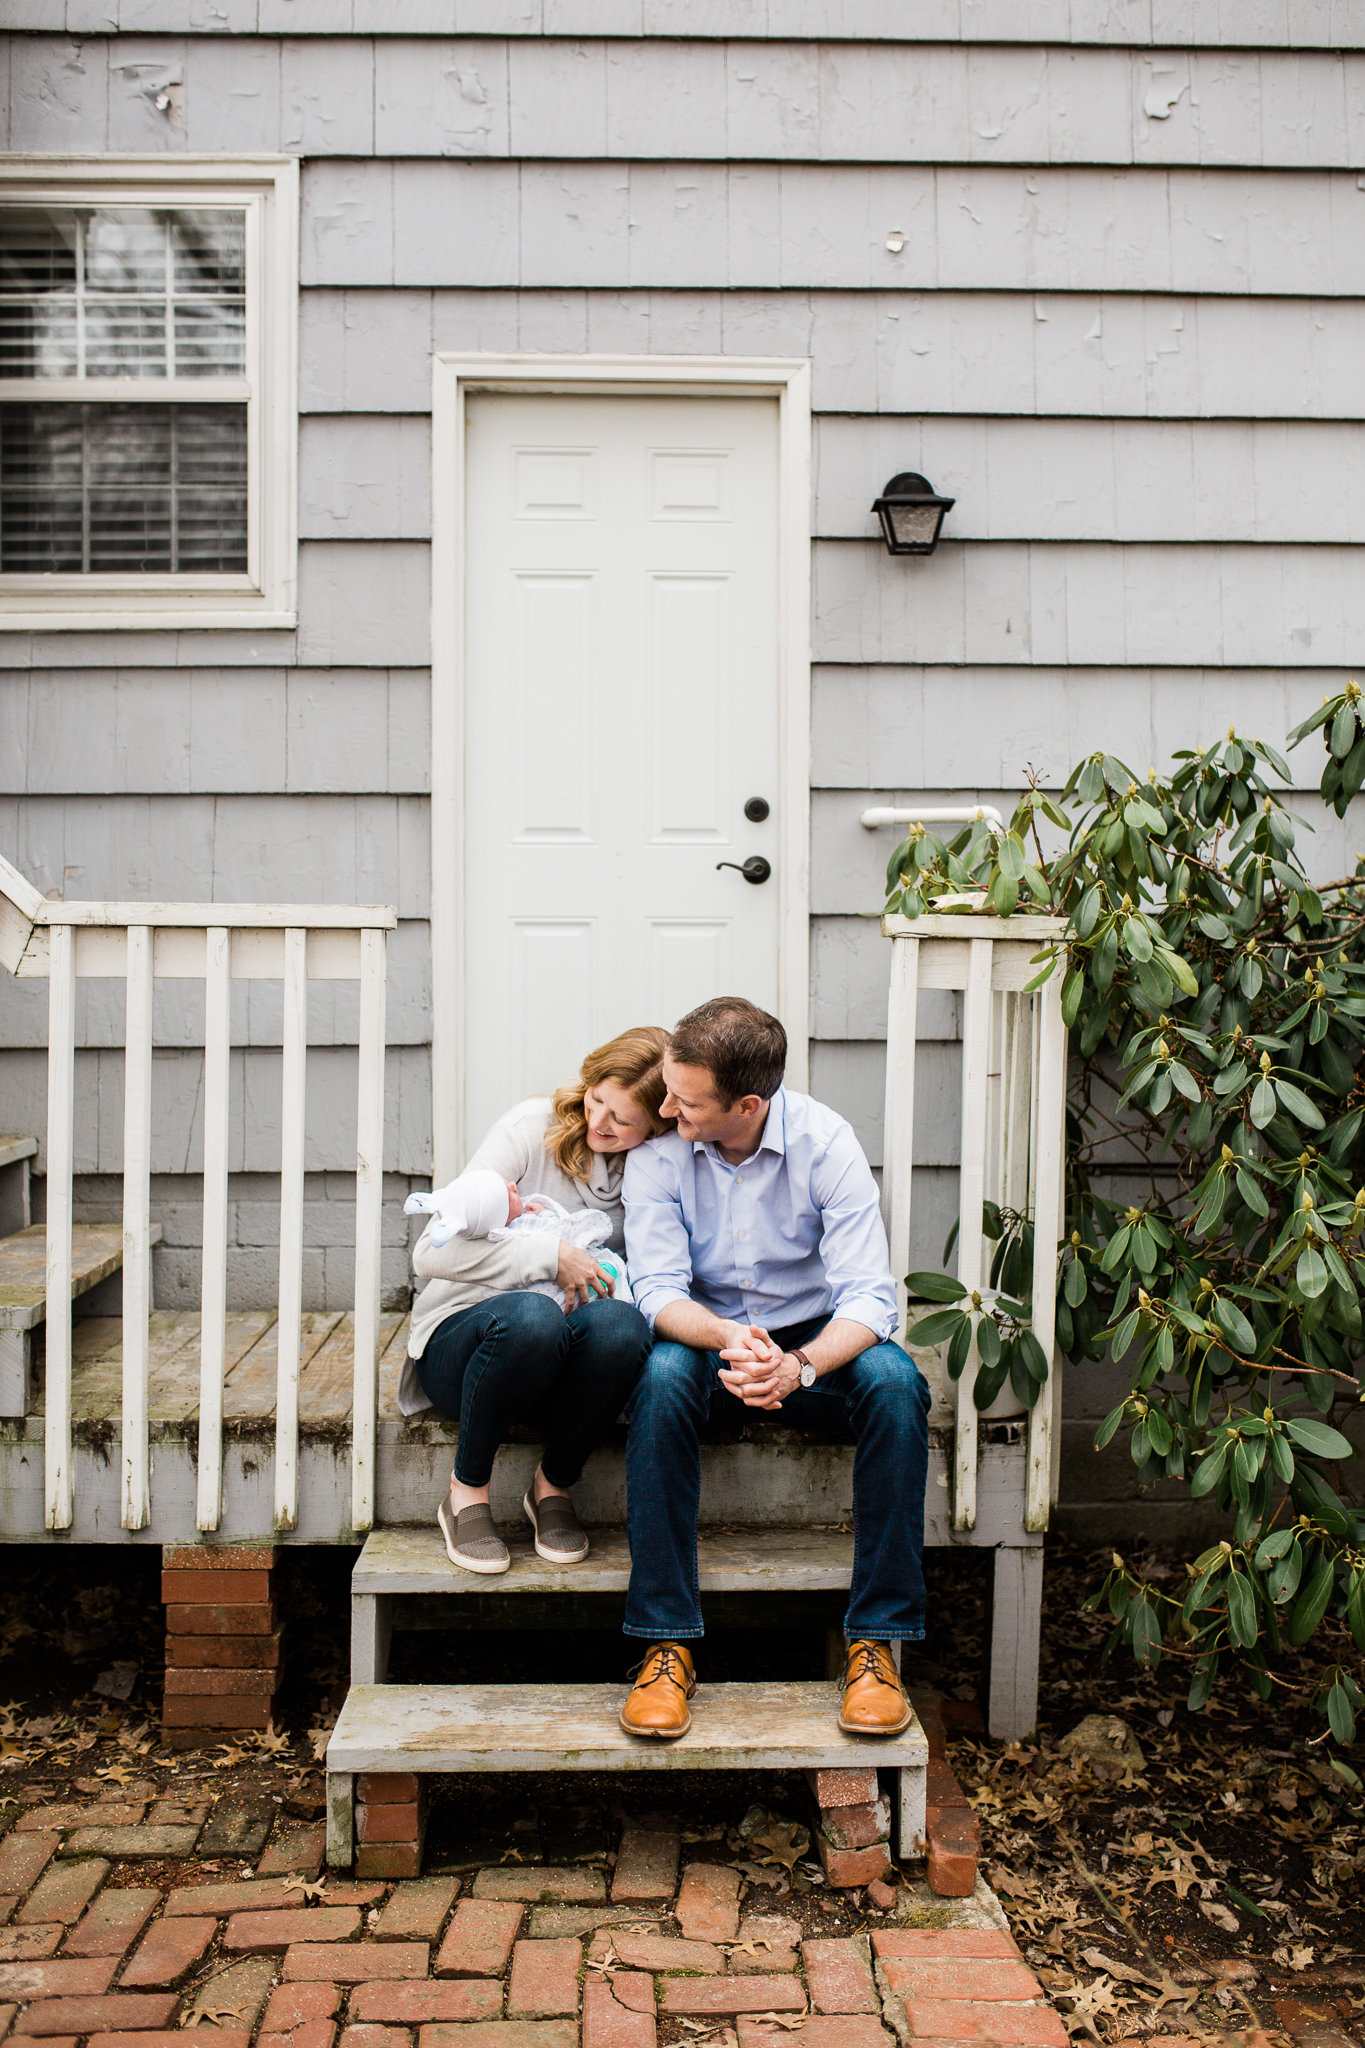 Parents cuddle their newborn baby on the back porch, Kansas City lifestyle newborn session, Rebecca Clair Photography